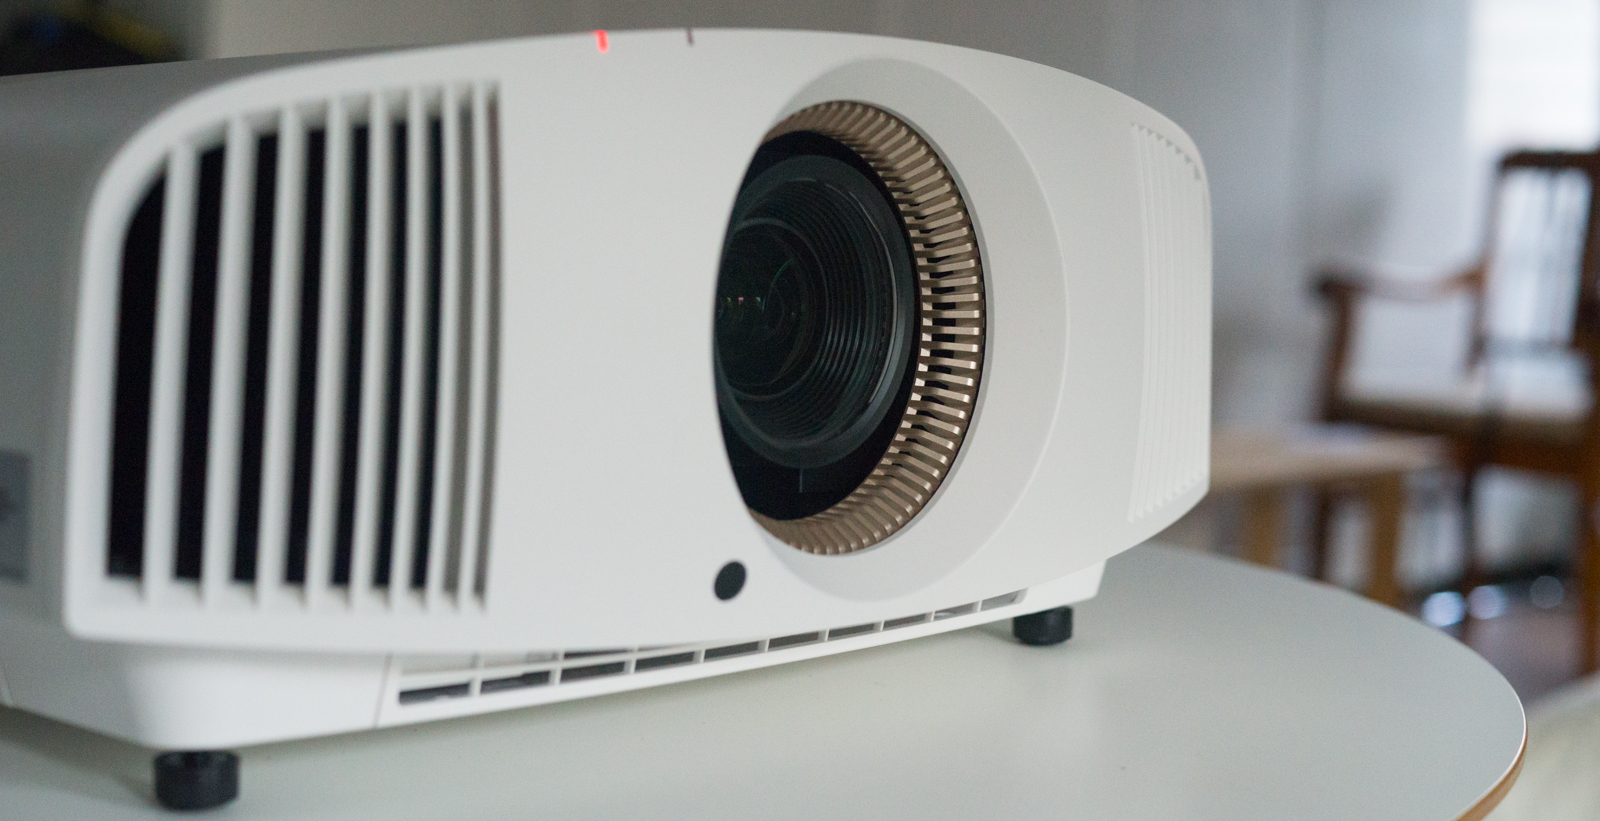 sony-VPL-VW520ES-projector